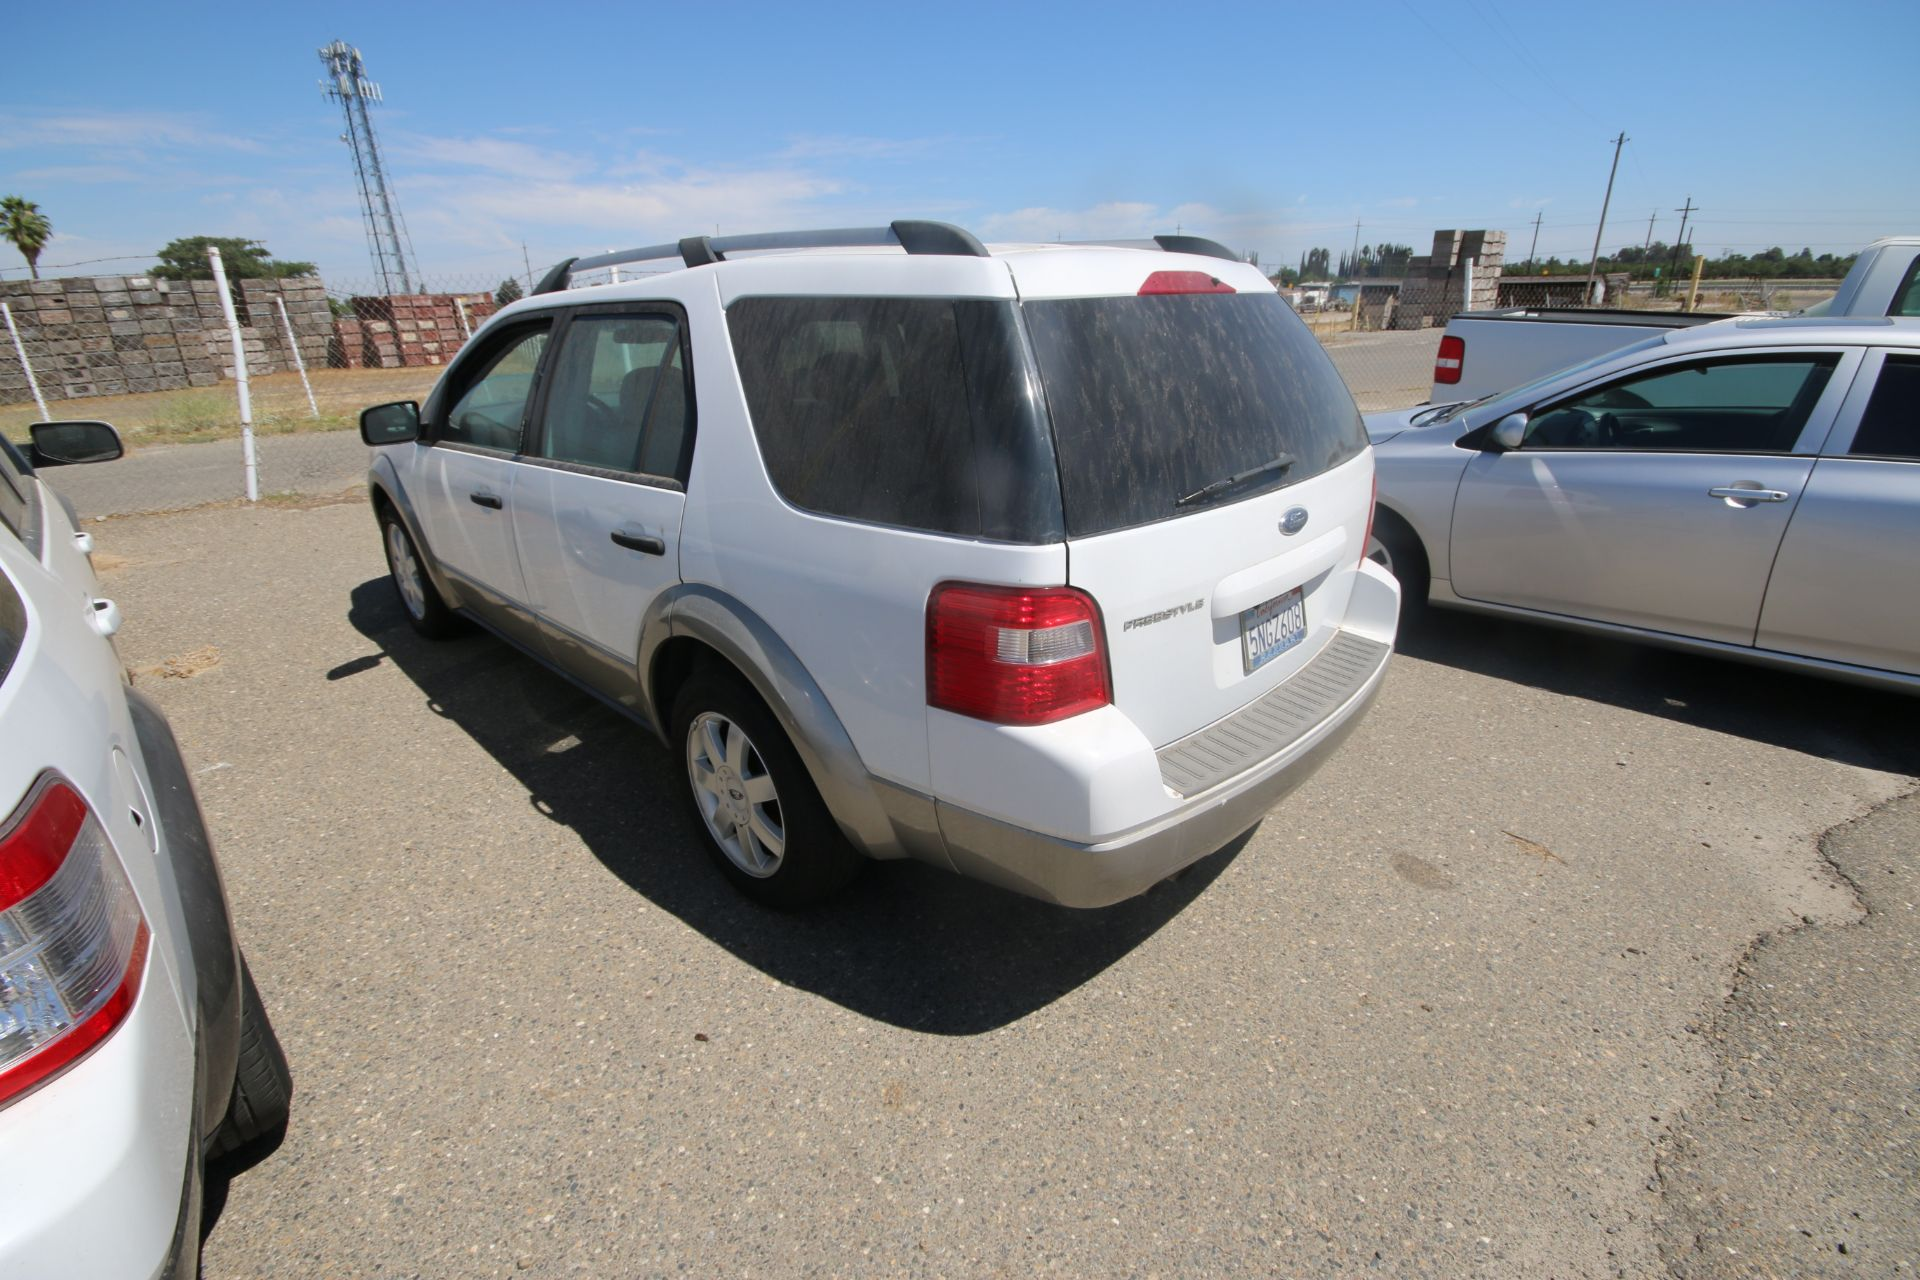 2006 Ford Freestyle, VIN #: 1FMDKO11X6GA41766, with 108,982 Miles, License Plate #: 5NGZ608, Started - Image 5 of 22